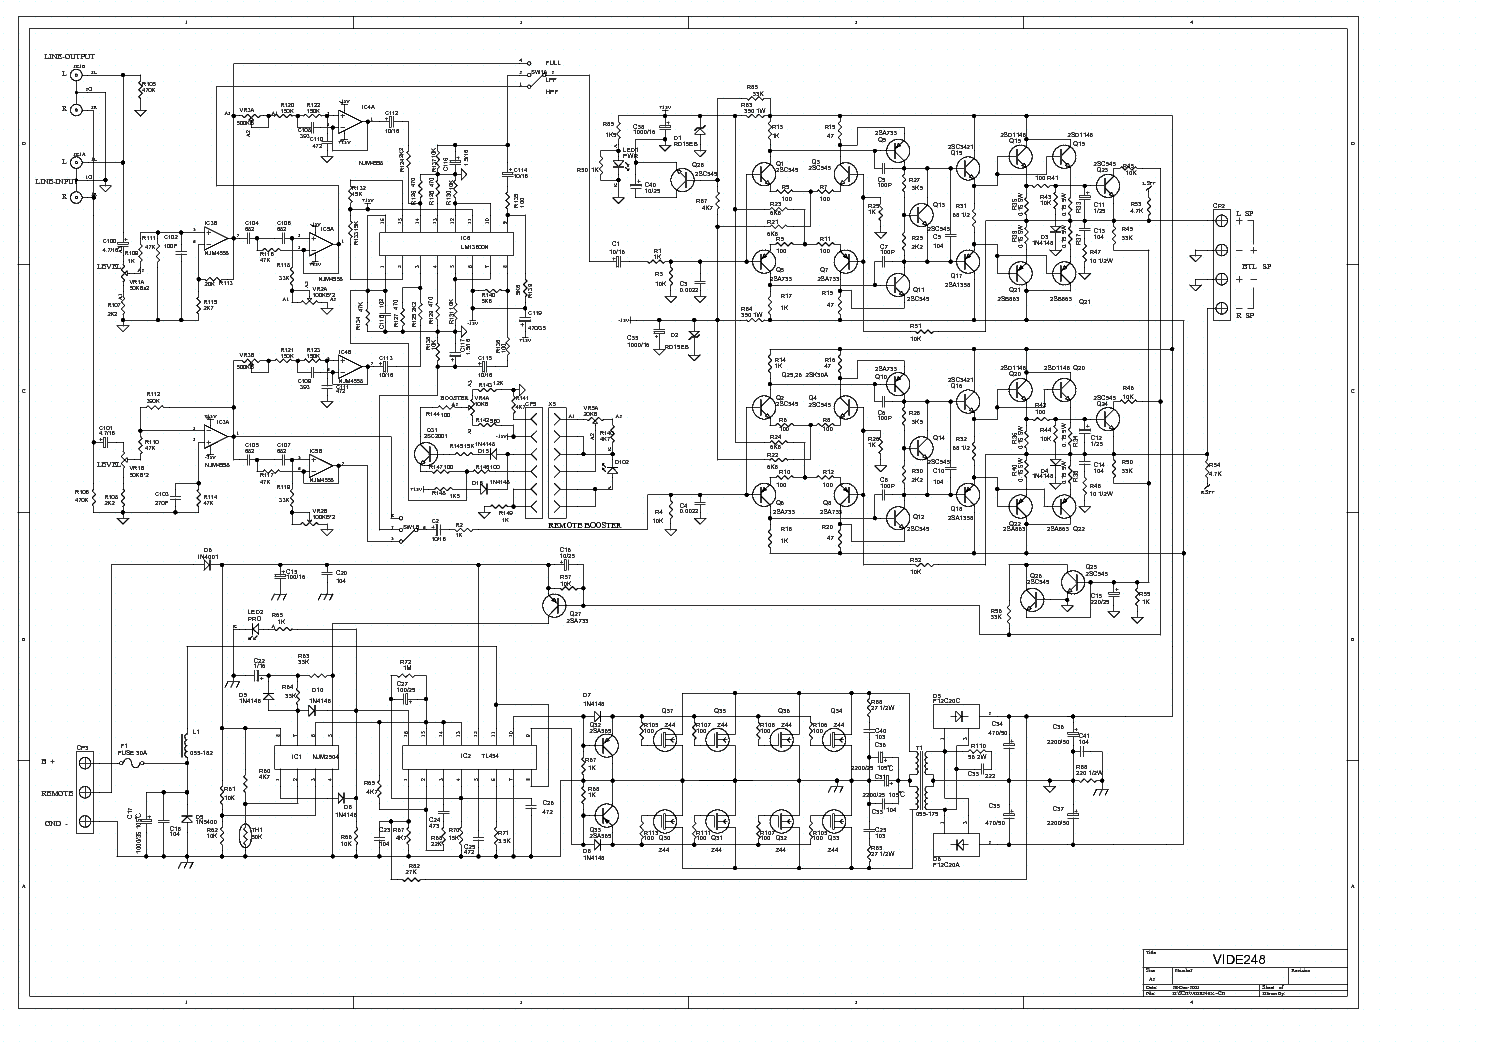 lanzar_vibe248_car_amplifier_sch.pdf_1 lanzar wiring diagram lanzar maxp124d wiring diagram \u2022 free wiring vibe subwoofer wiring diagram at reclaimingppi.co